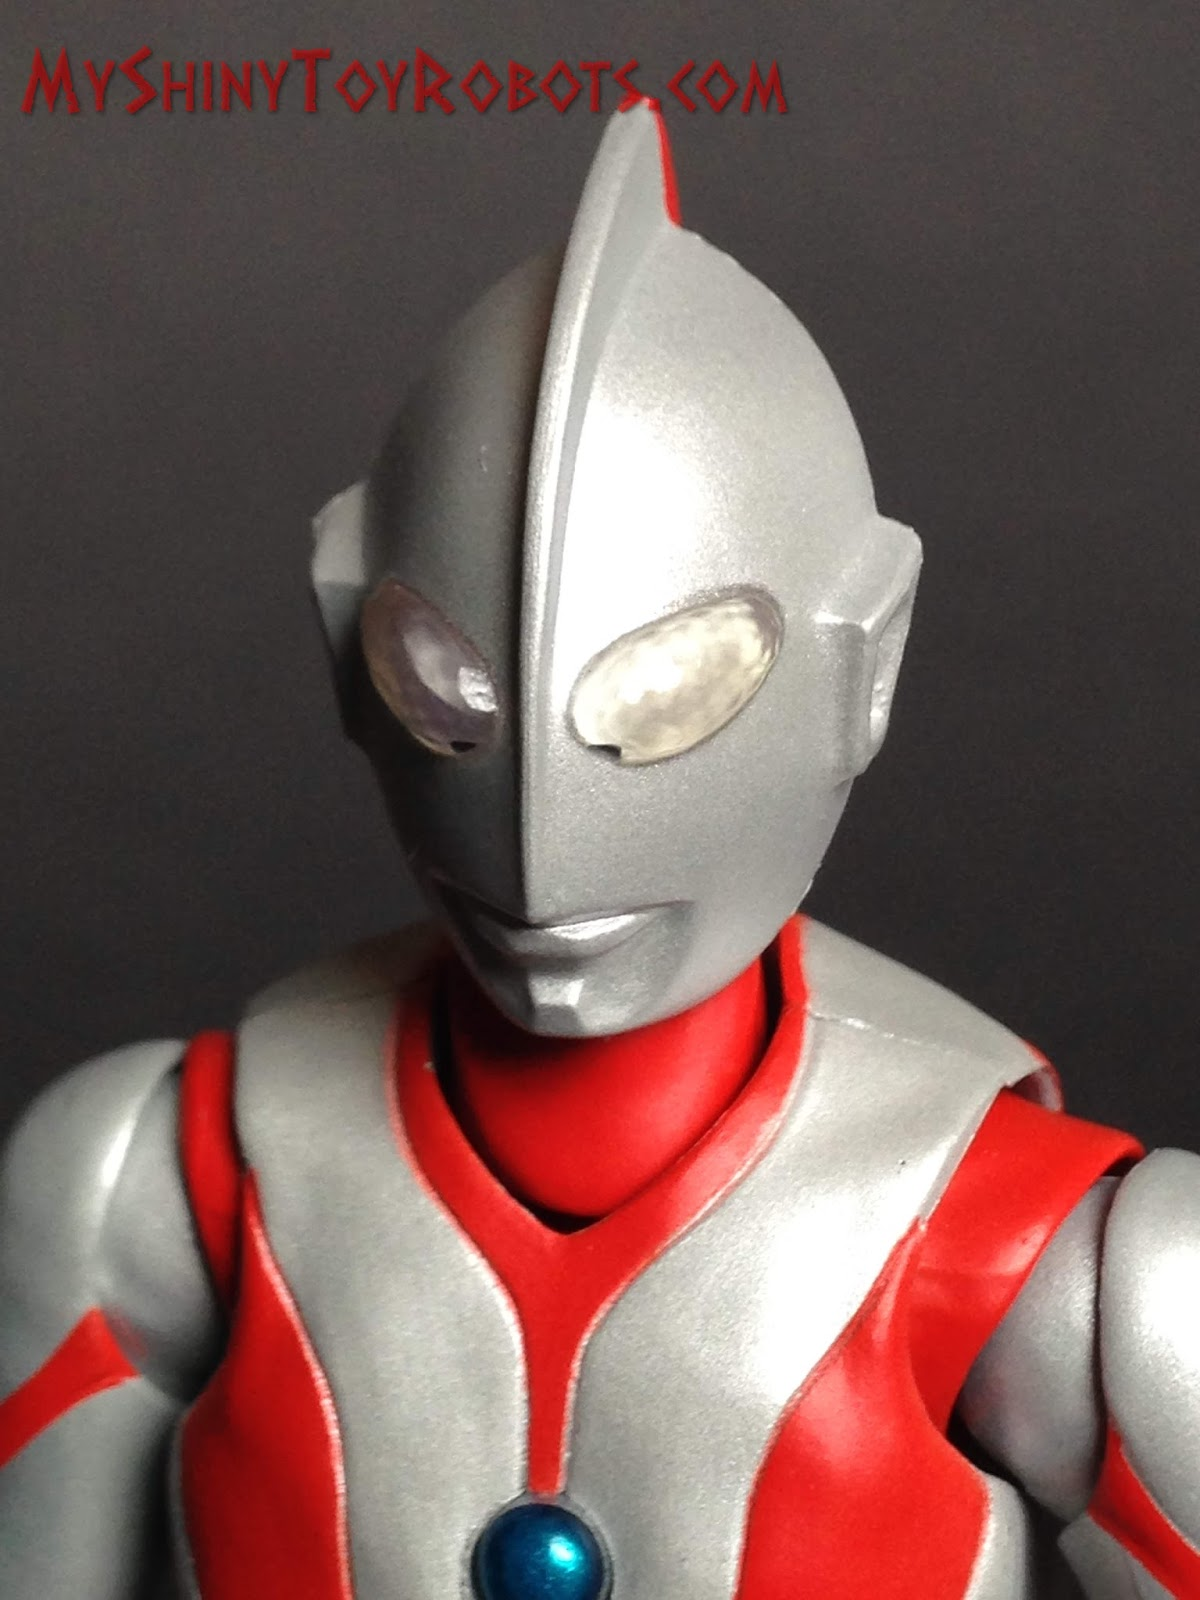 My Shiny Toy Robots: Toybox REVIEW: S.H. Figuarts Ultraman Ace